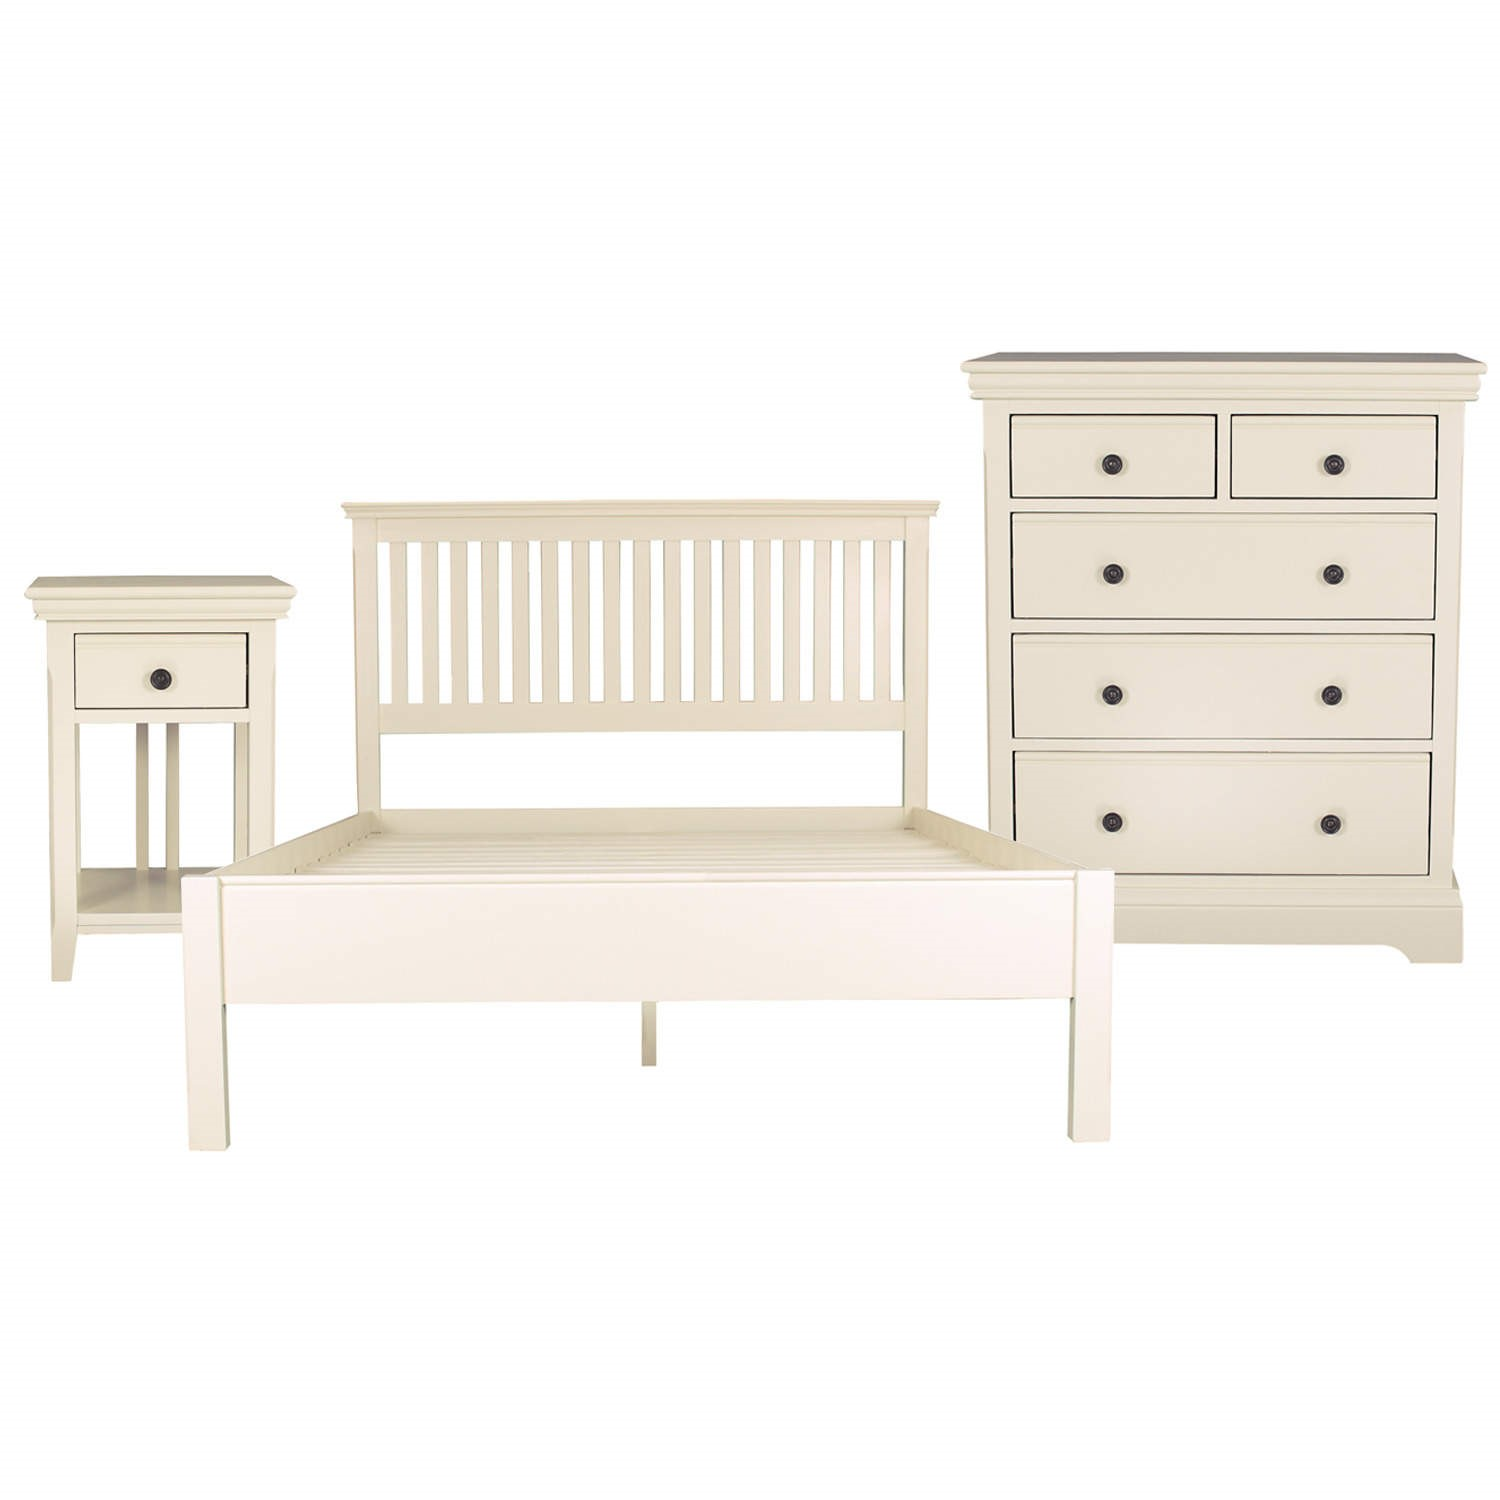 Savannah Double Bed 3 Piece Bedroom Set In Ivory/Cream